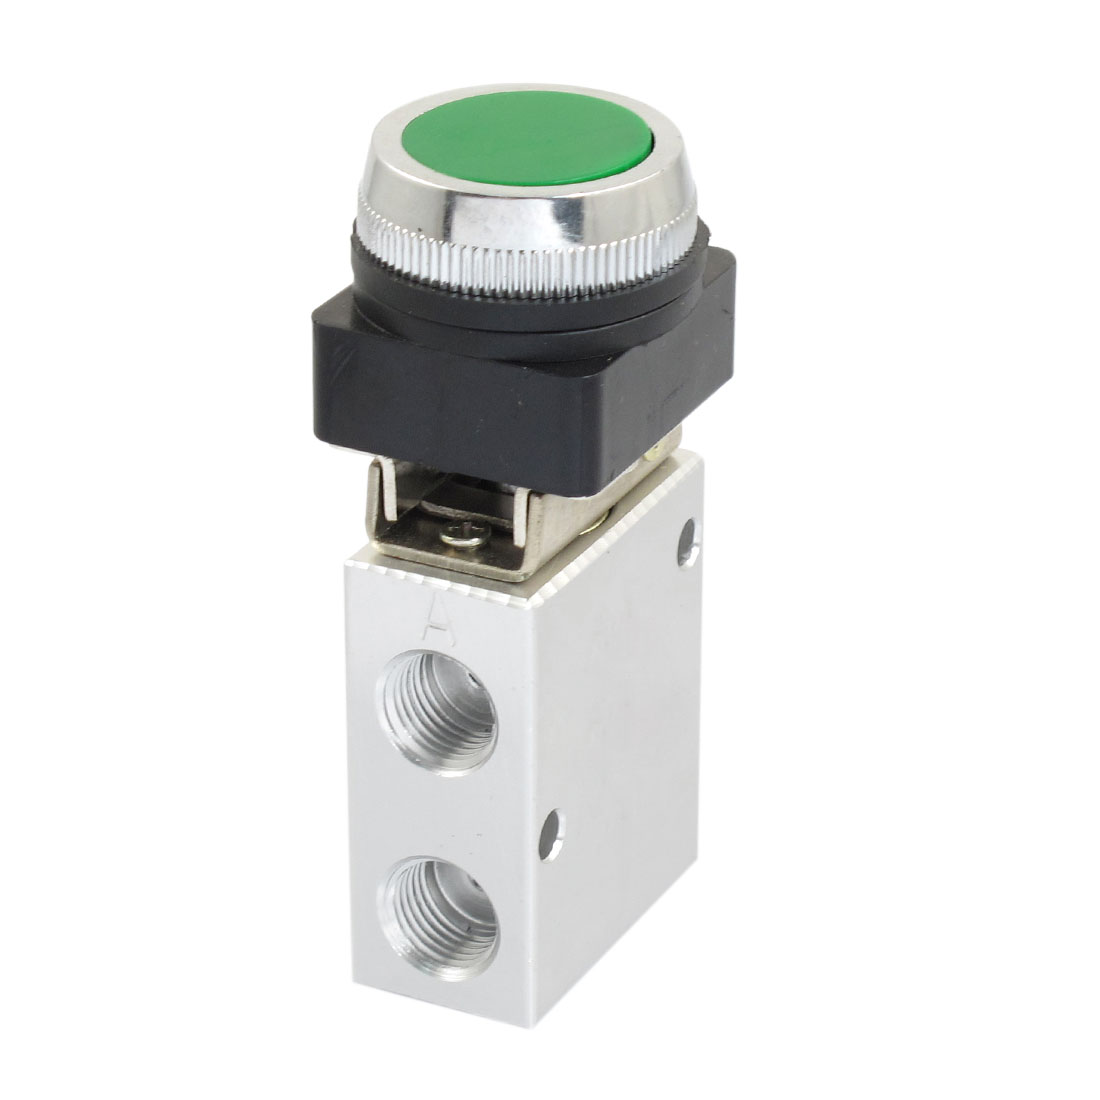 JM-322PP 13mm Thread 3/2 Way Green Flat Push Button Pneumatic Mechanical Valve